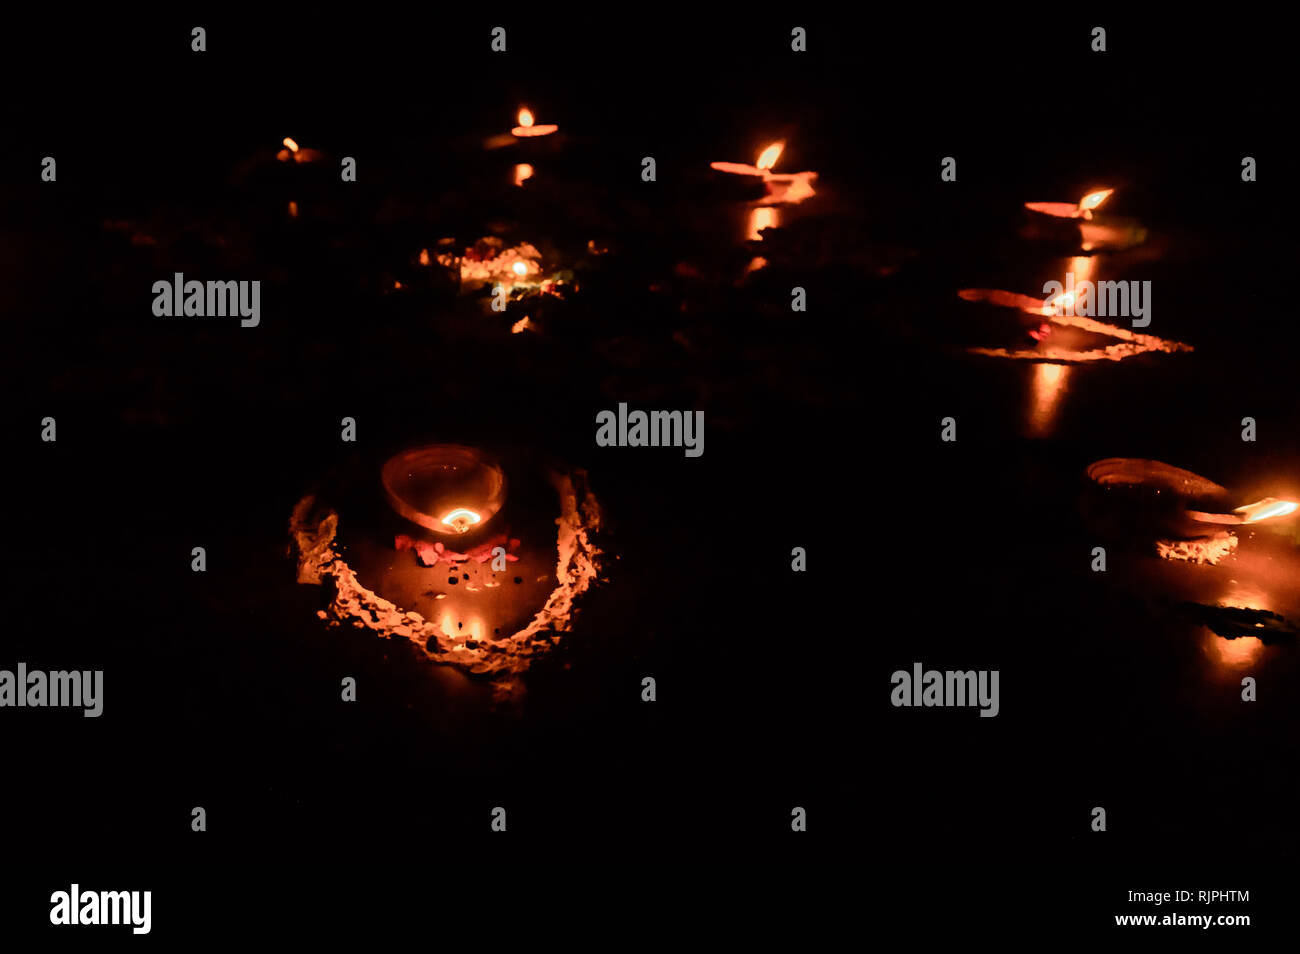 Diya- Lamps lit in festival season of Diwali. Group of burning oil lamp on black background. Candles lighting in darkness. Burning Candle with real re - Stock Image